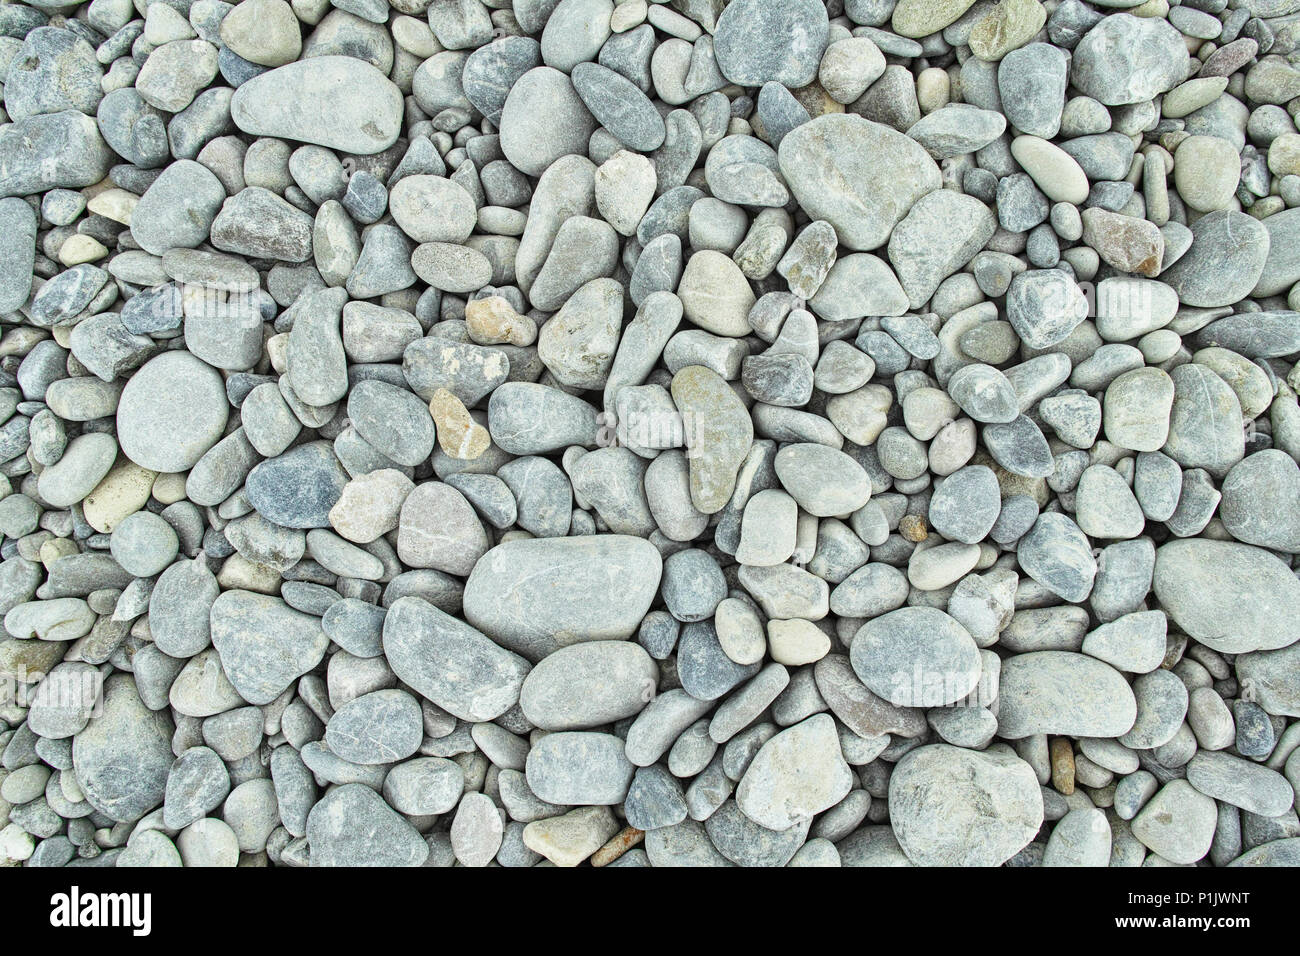 stones beach - Stock Image